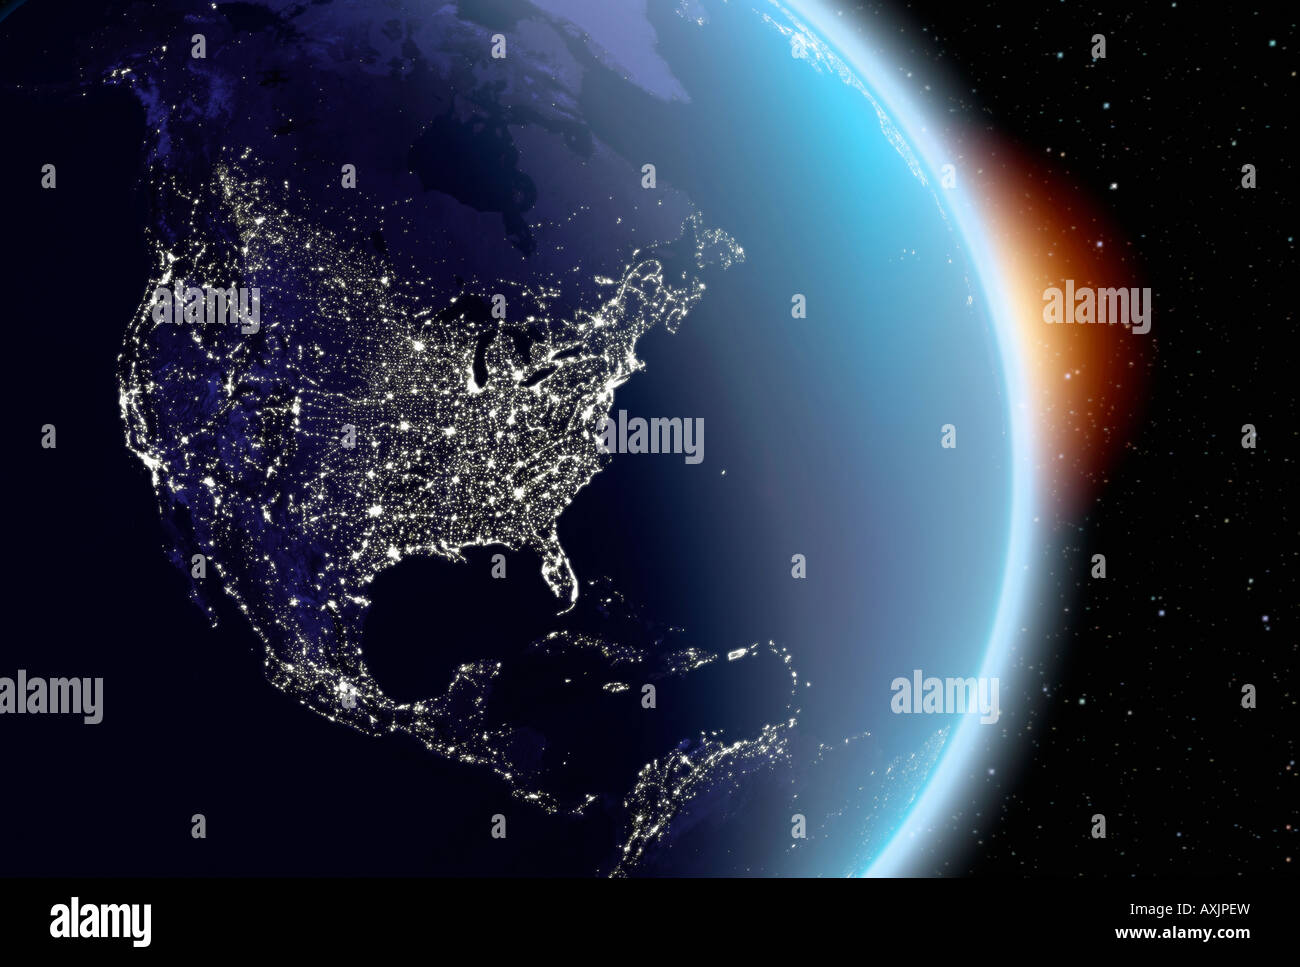 satellite image of planet earth North America at night - Stock Image